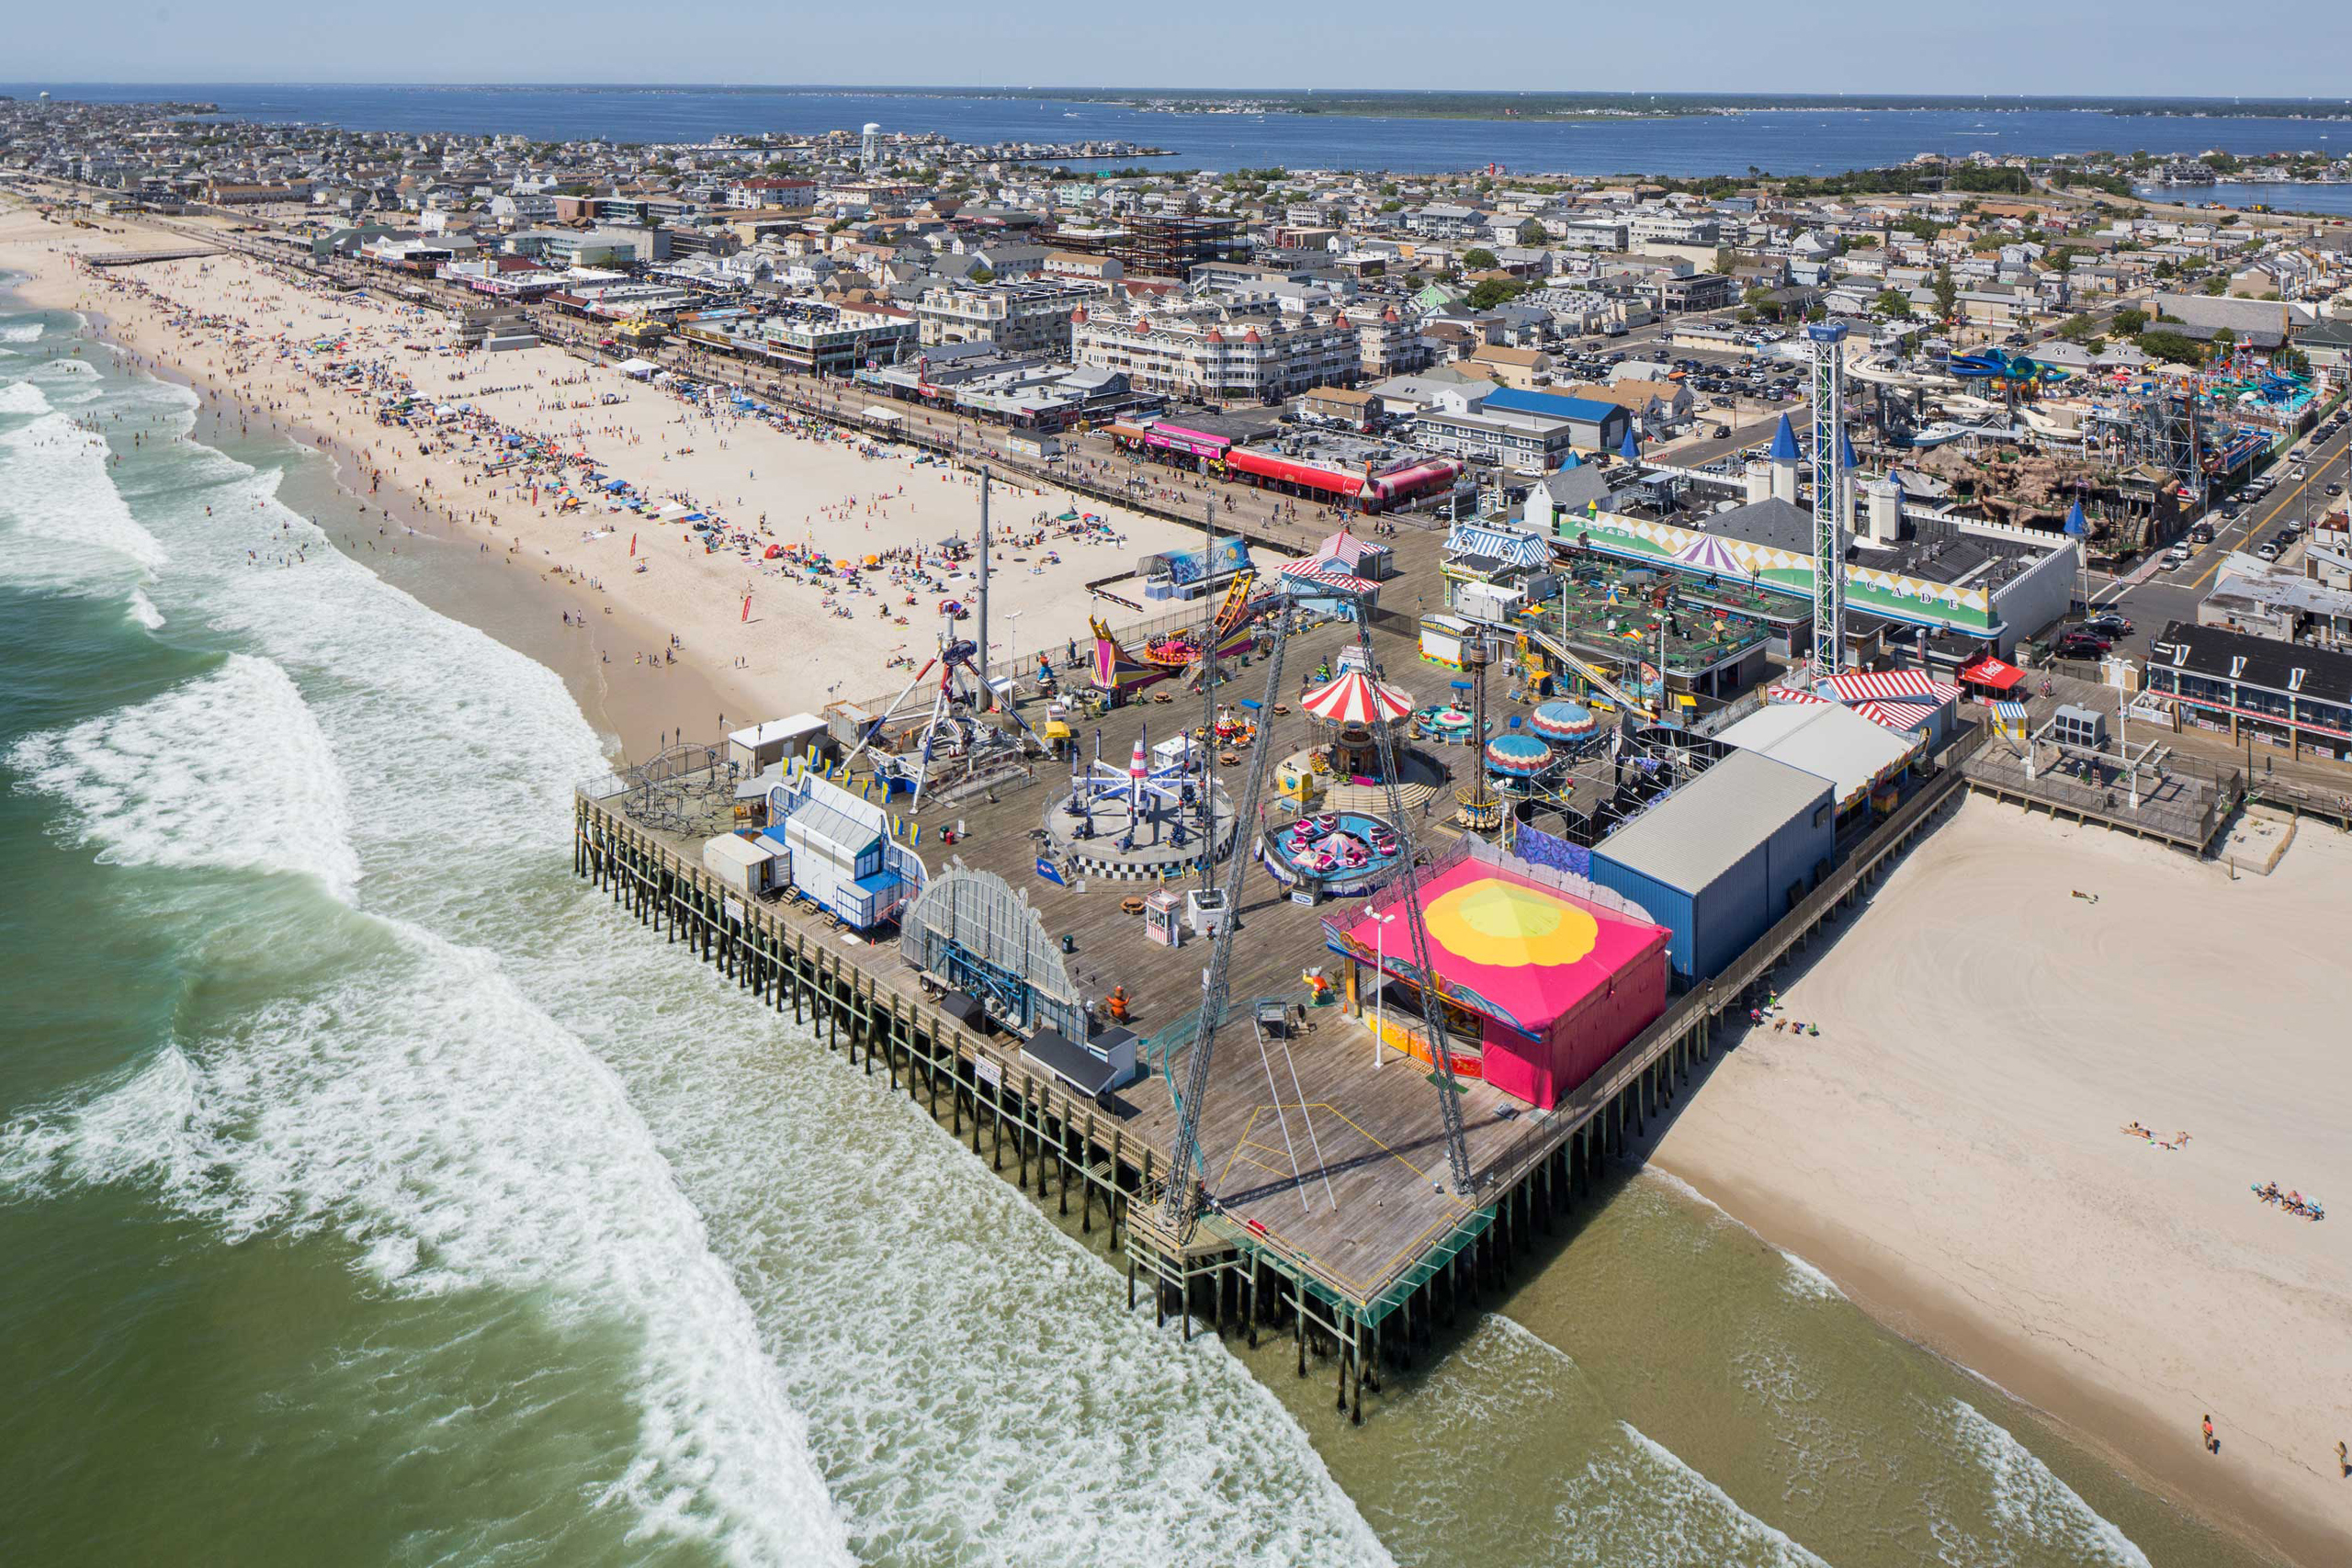 The casino pier amusement park is photographed from the air on Saturday, June 18, 2016 in Seaside Heights, NJ.  Casino Pier is an amusement park situated on a pier, it was partially destroyed by Hurricane Sandy but has since reopened.